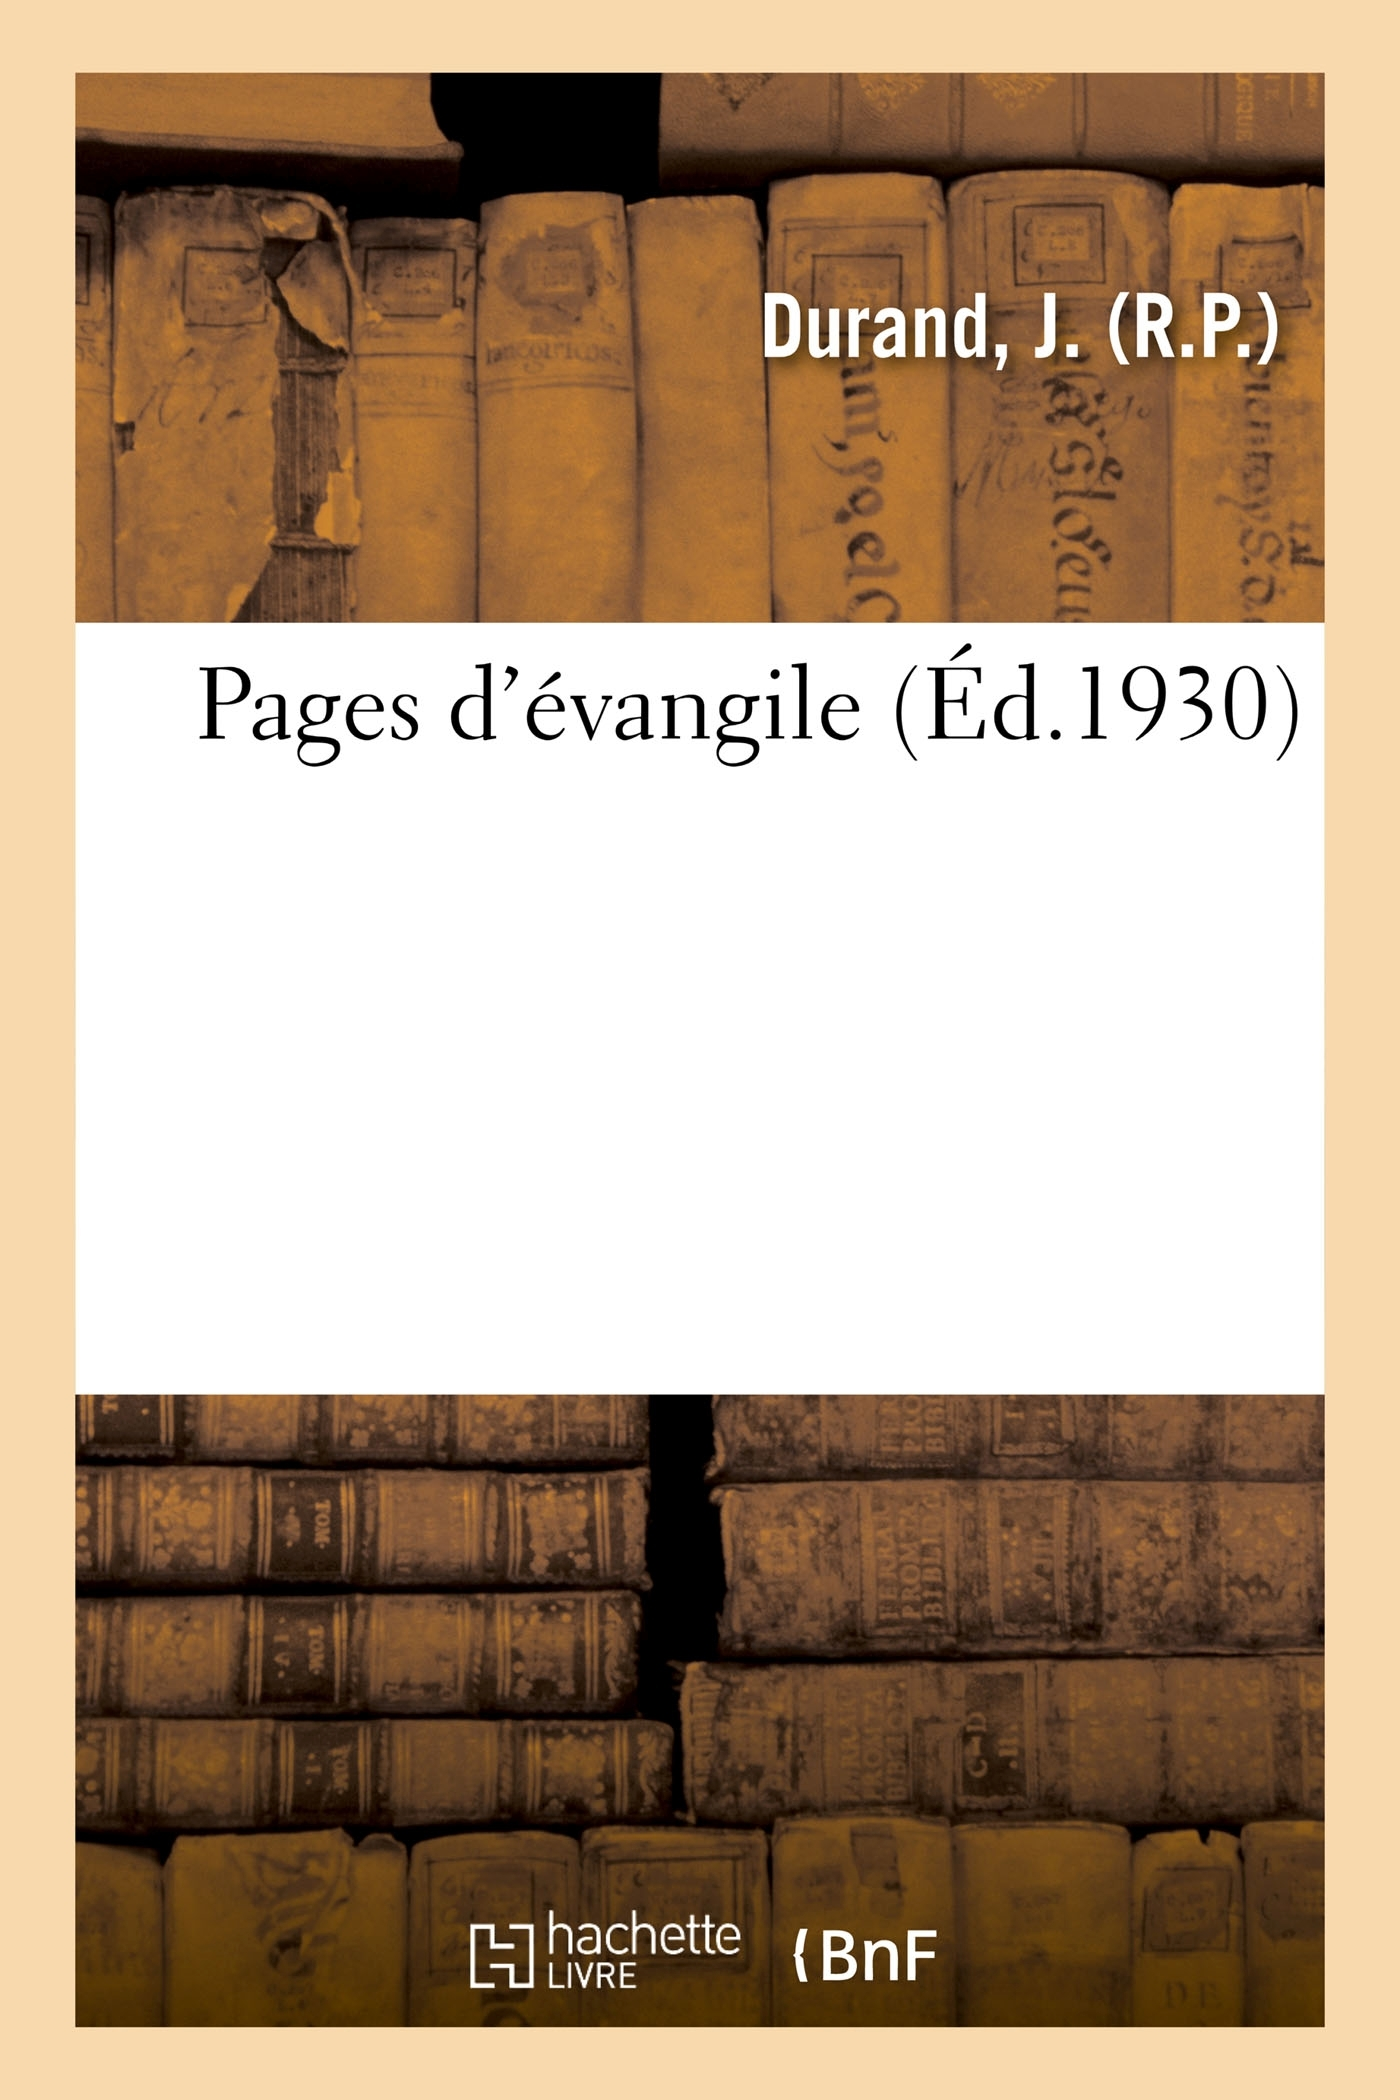 PAGES D'EVANGILE